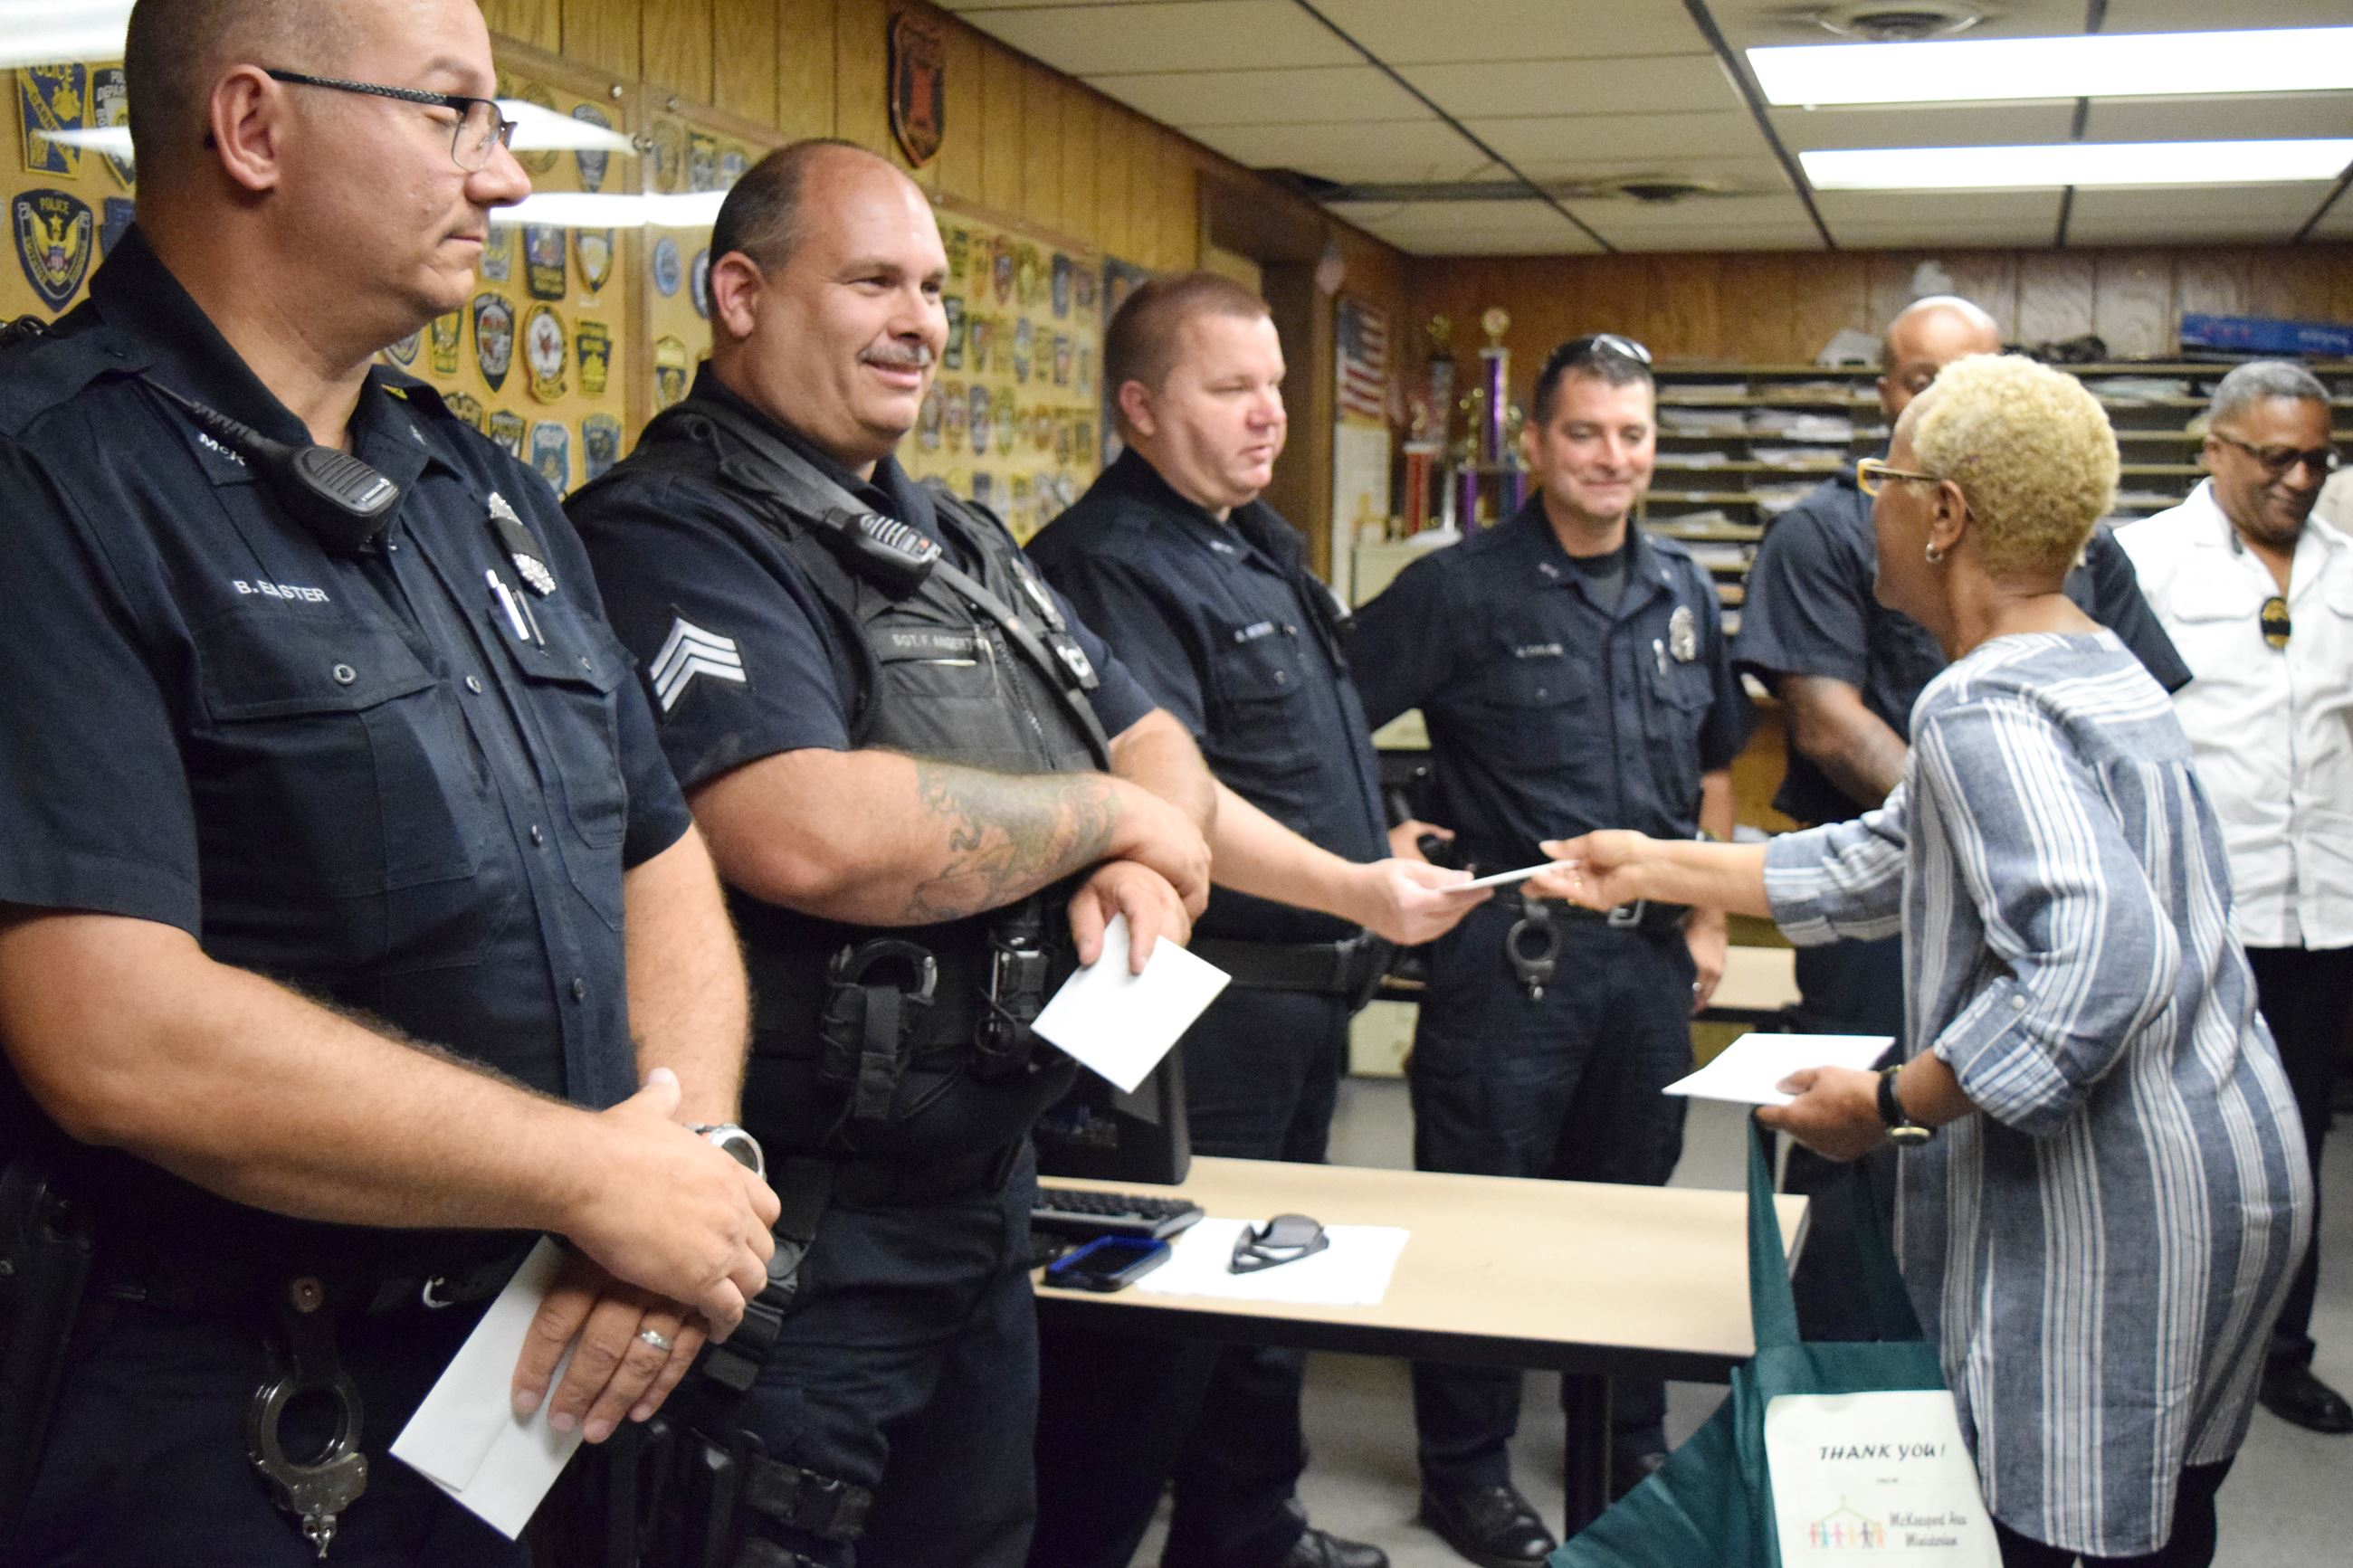 Ministerium offers kind gestures to police